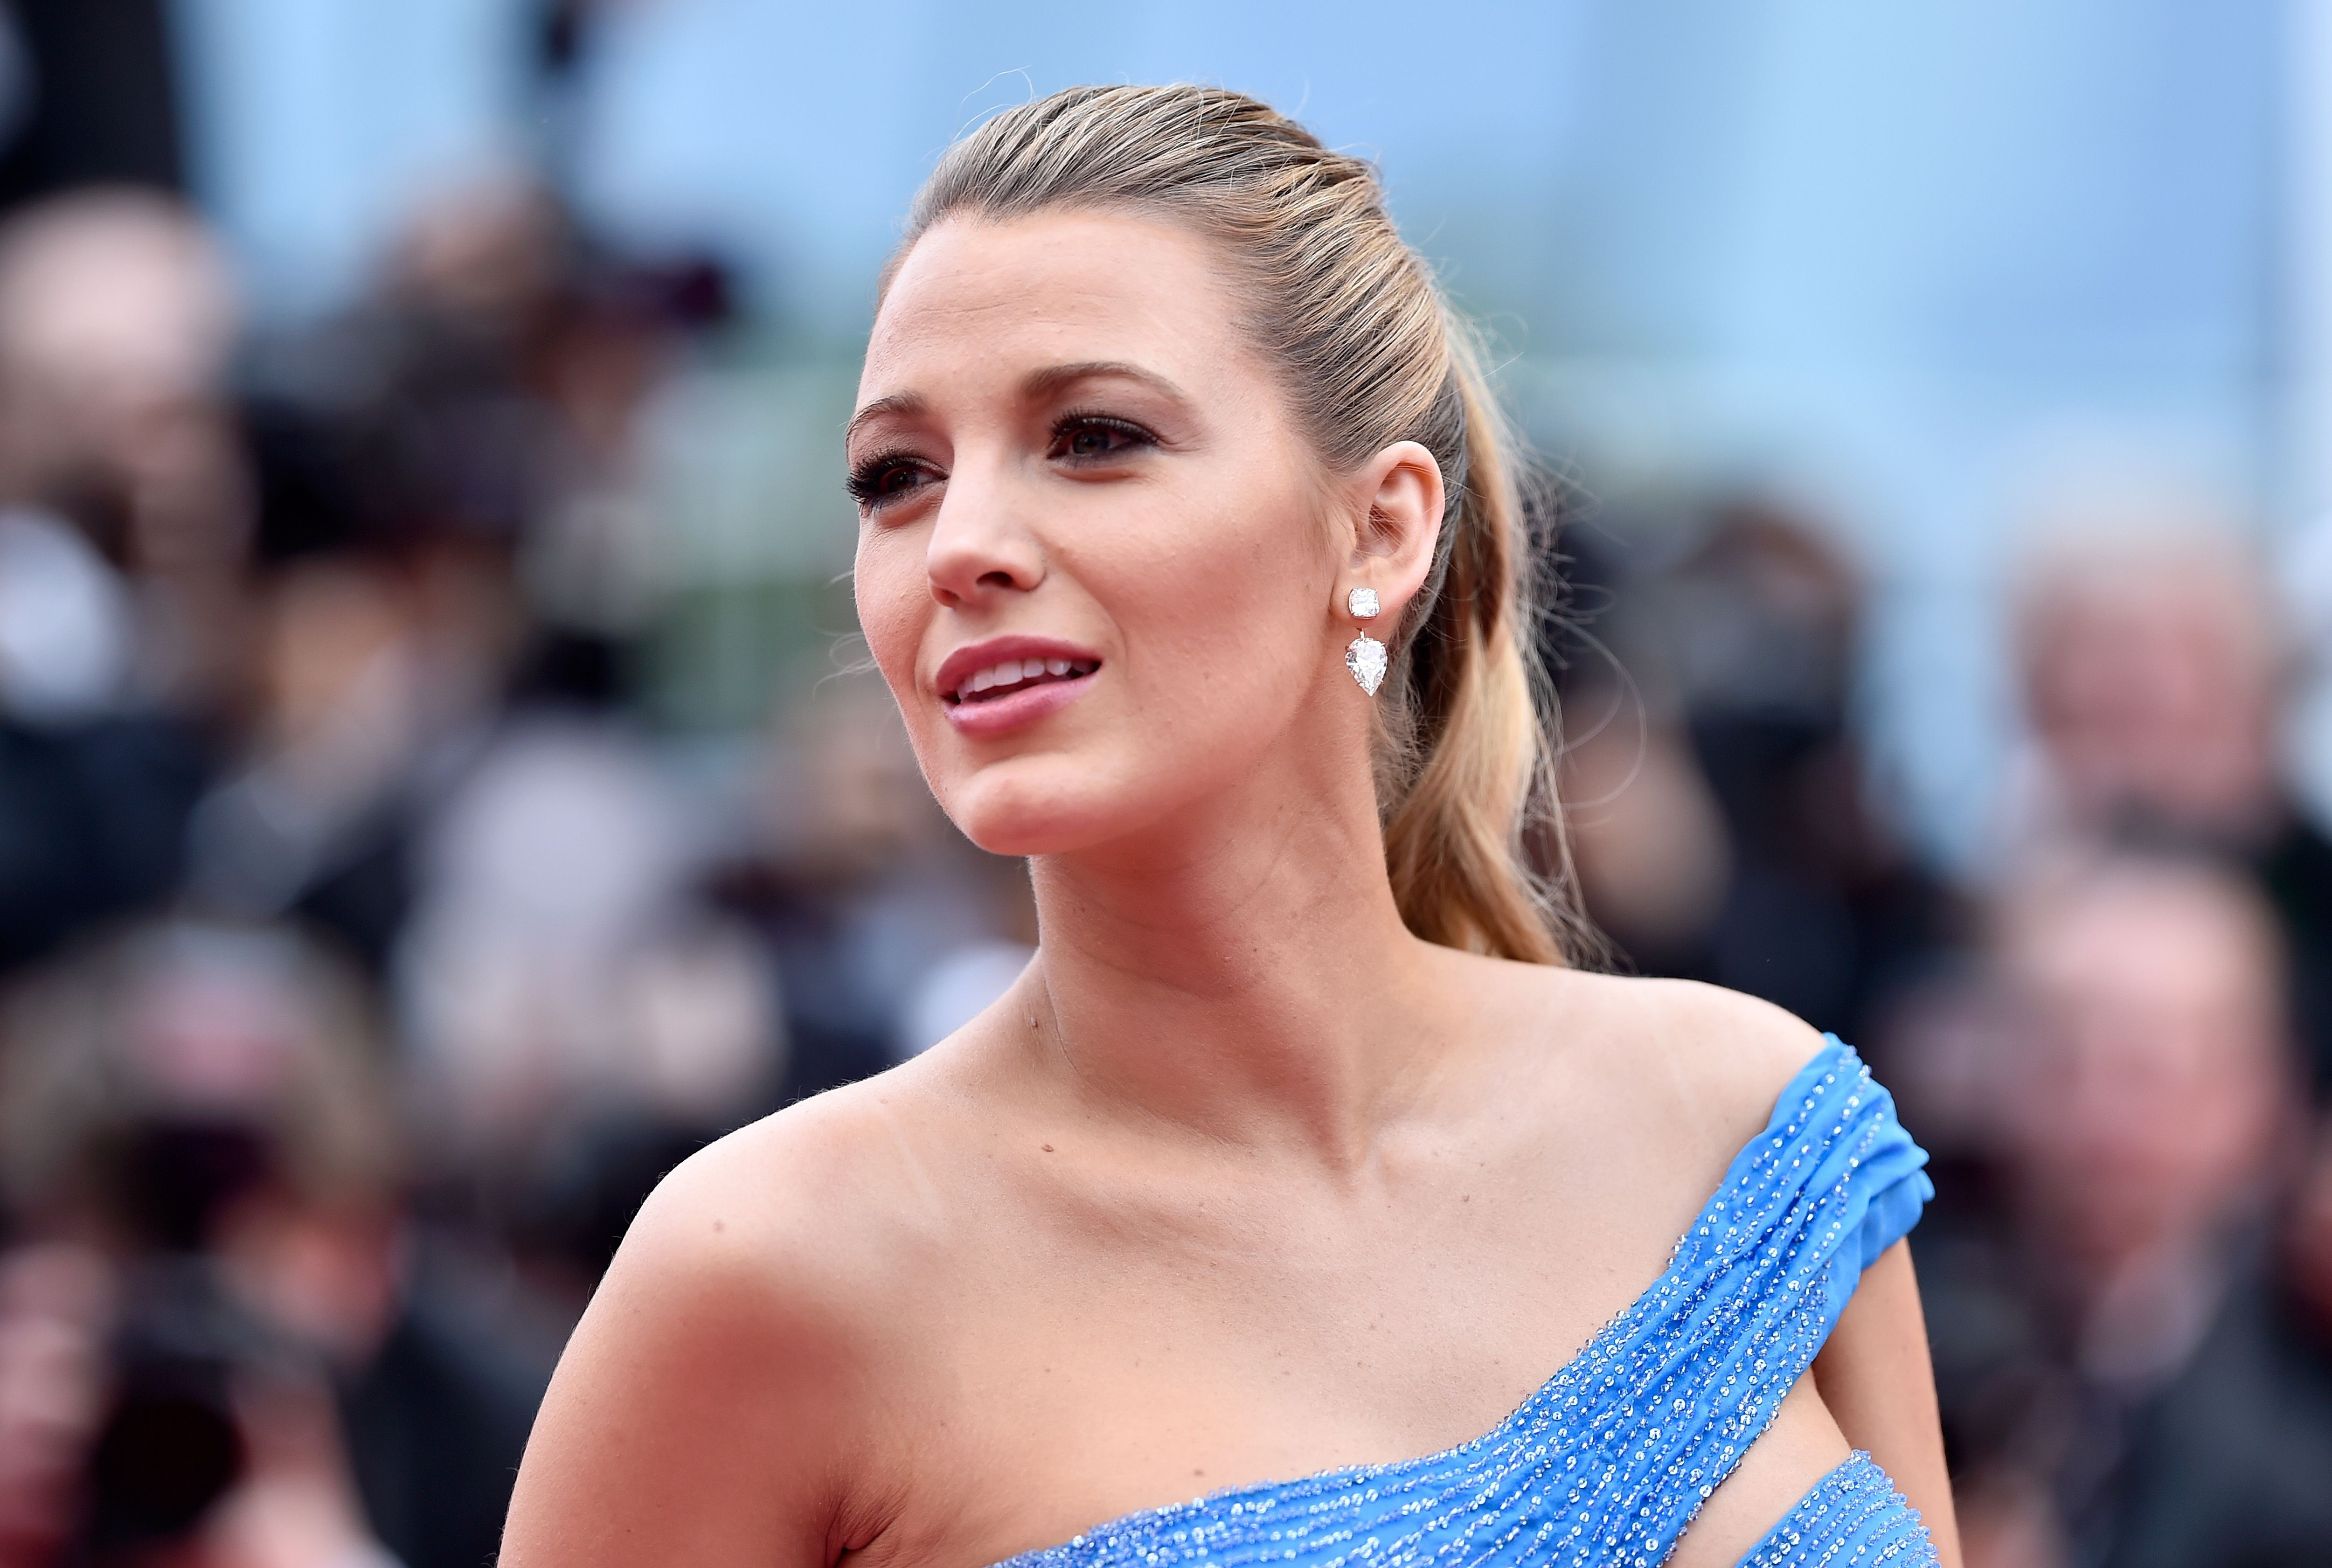 Blake Lively Hairstyle